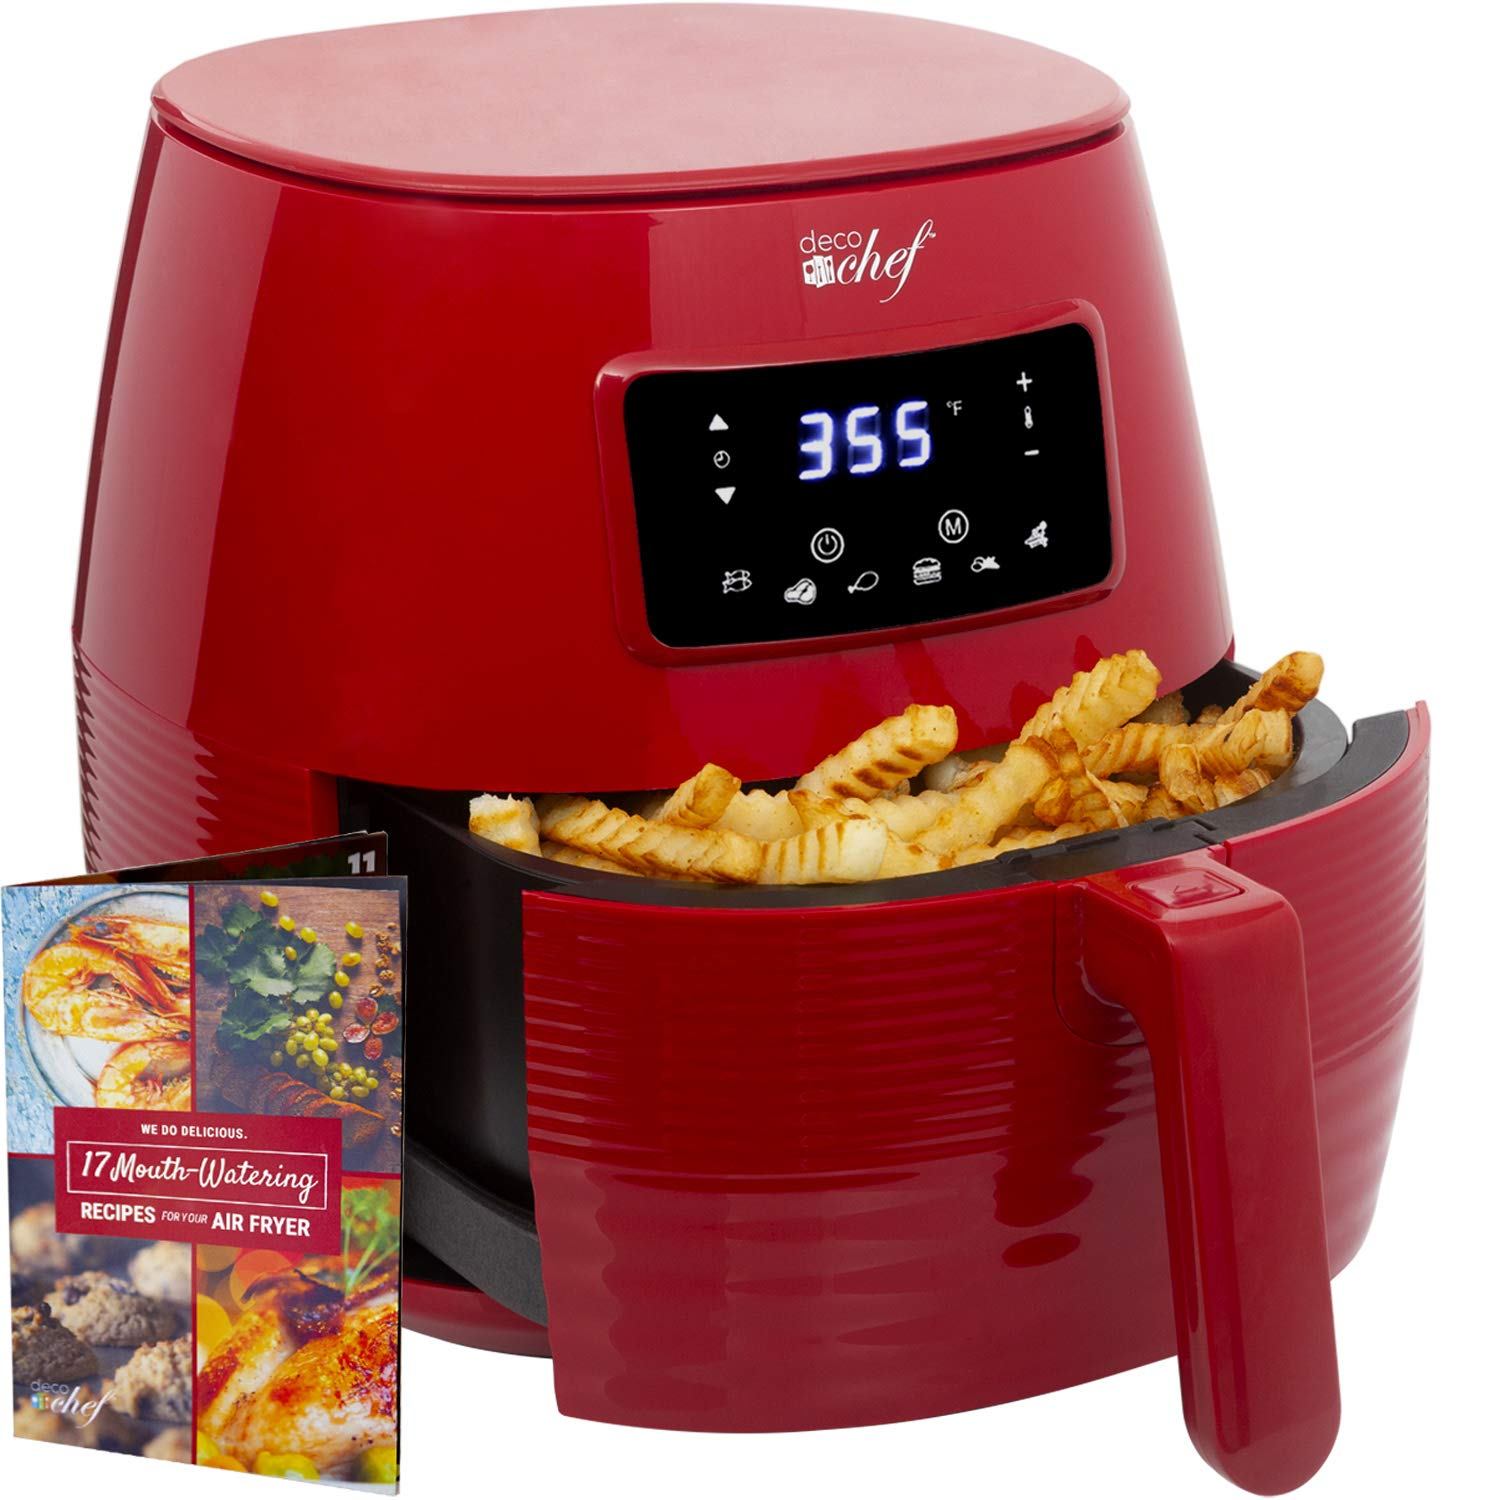 Deco Chef Digital Electric Air Fryer with Accessories and Cookbook- Air Frying, Roasting, Baking, Crisping, and Reheating for Healthier and Faster Cooking Red